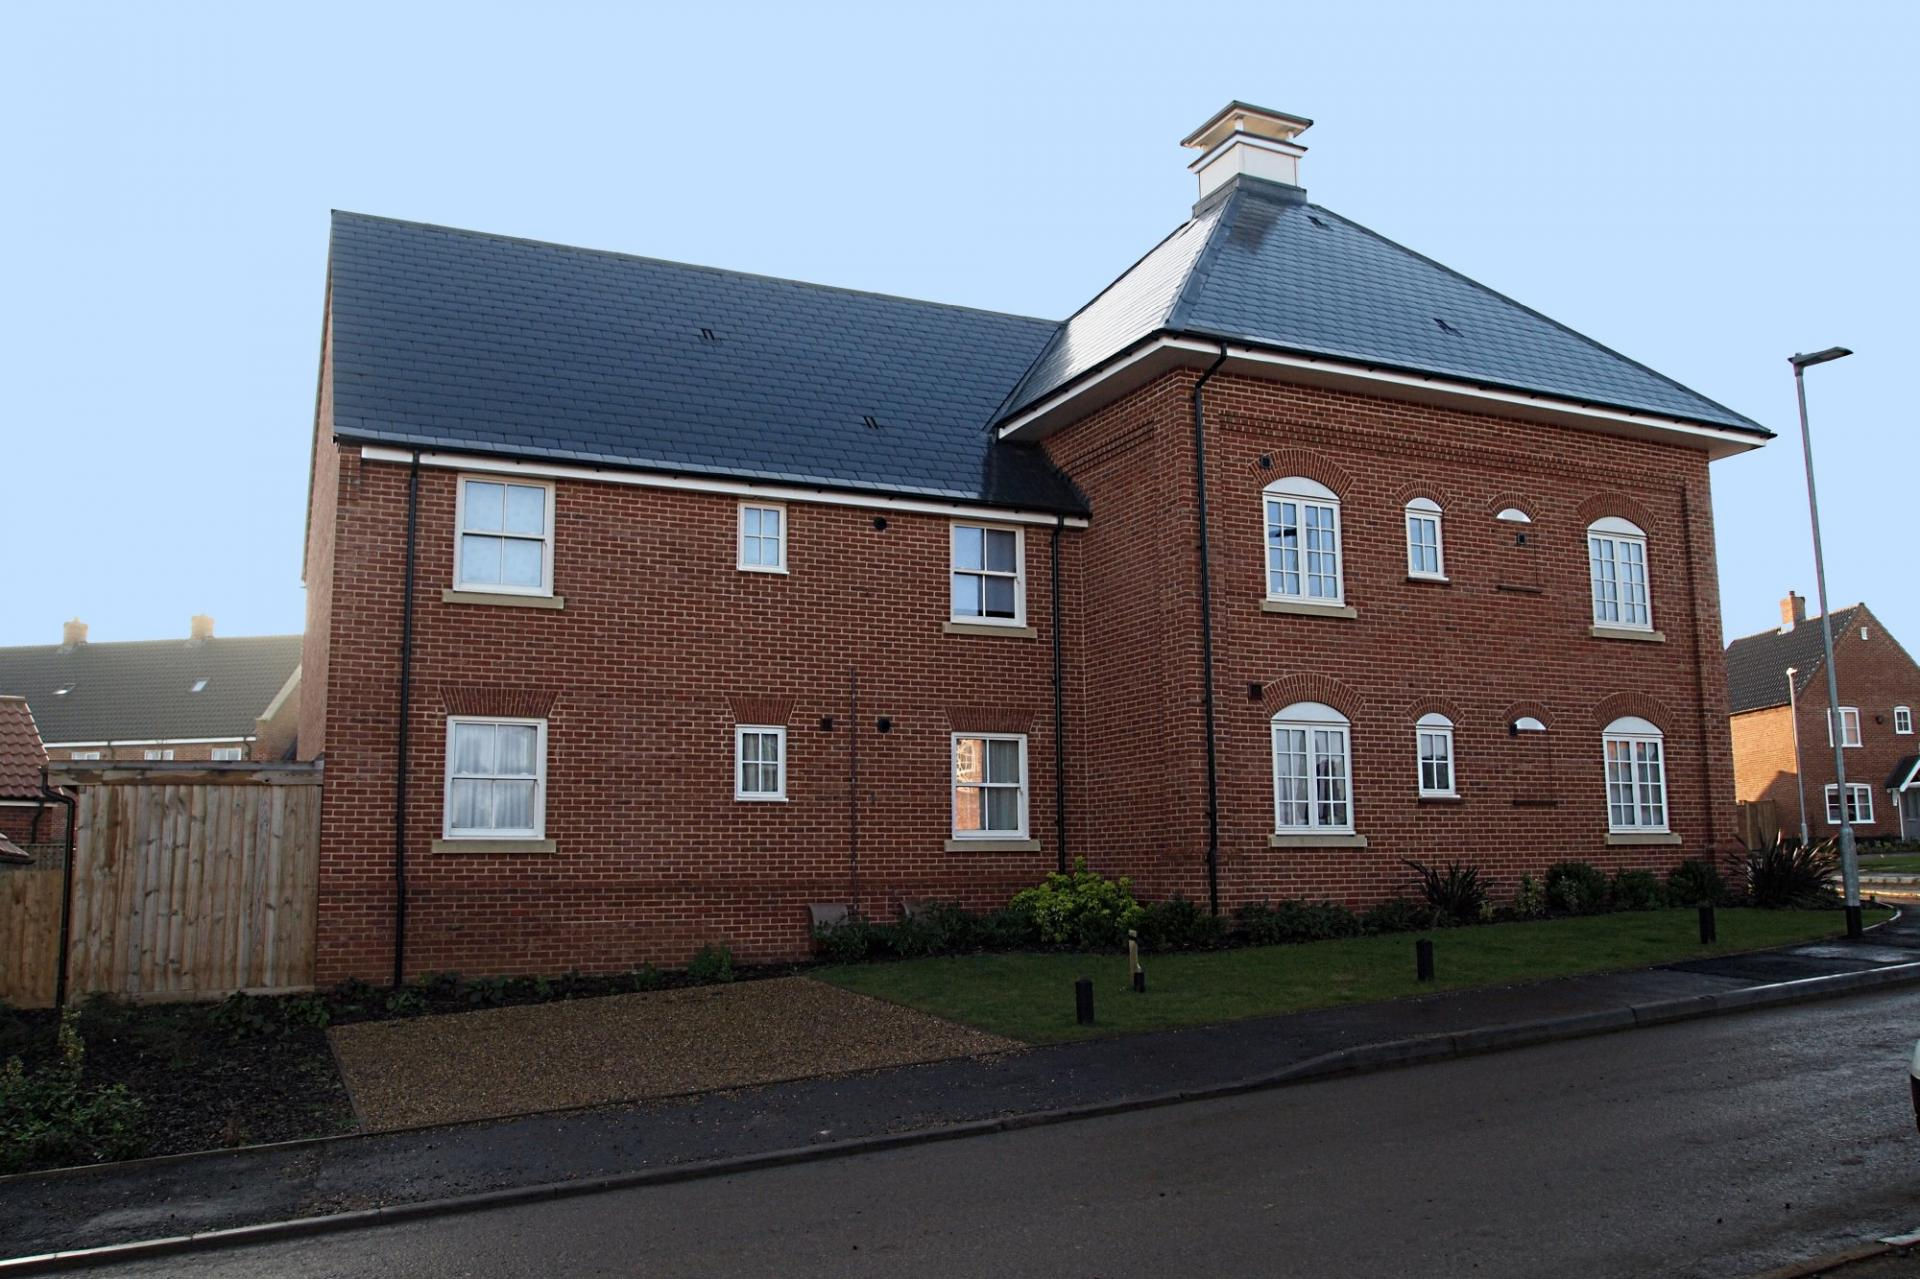 2 Bedroom Apartment For Sale In Norfolk